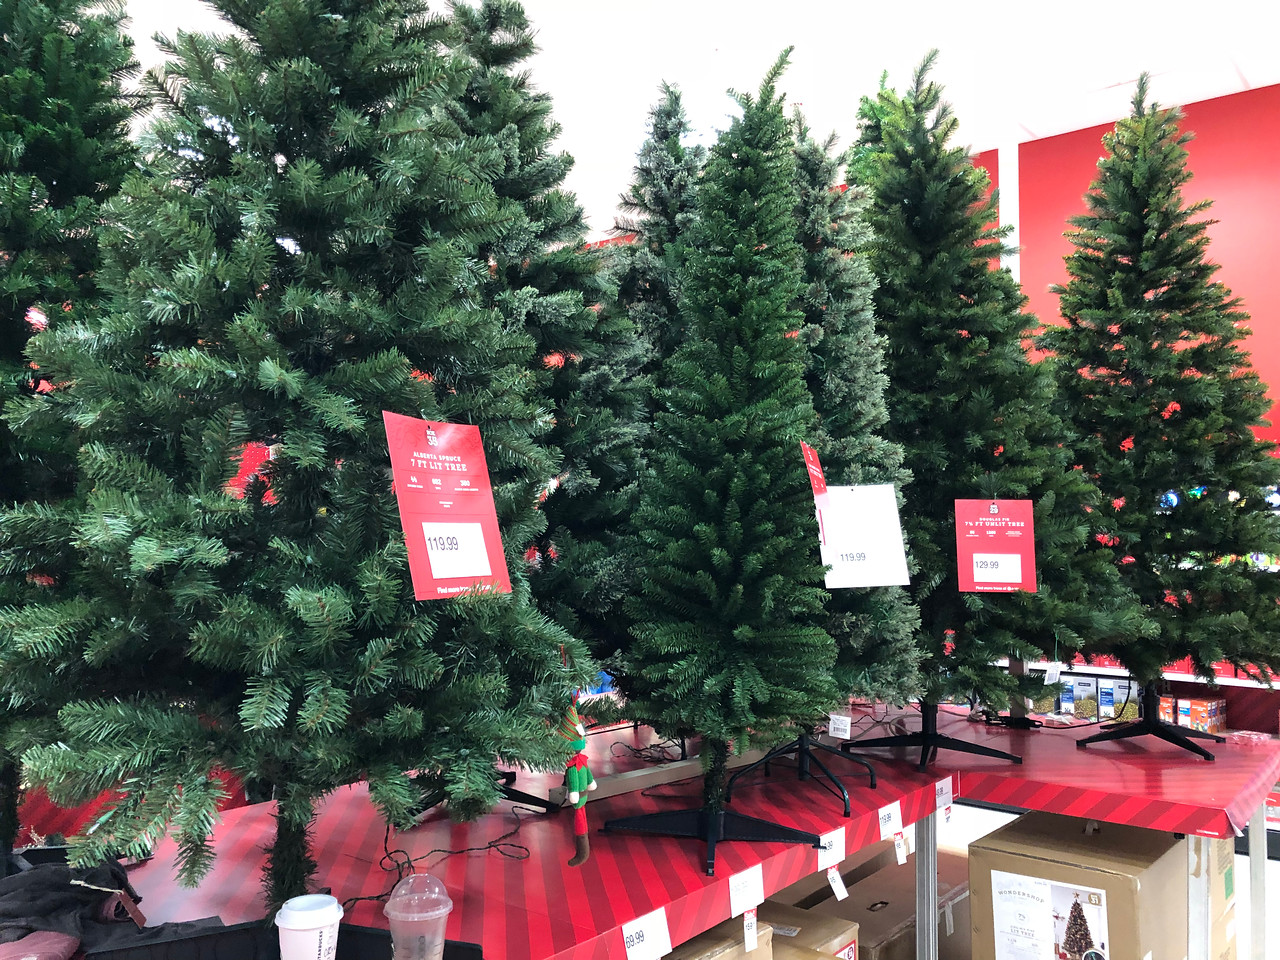 best target black friday 2018 deals – Christmas trees